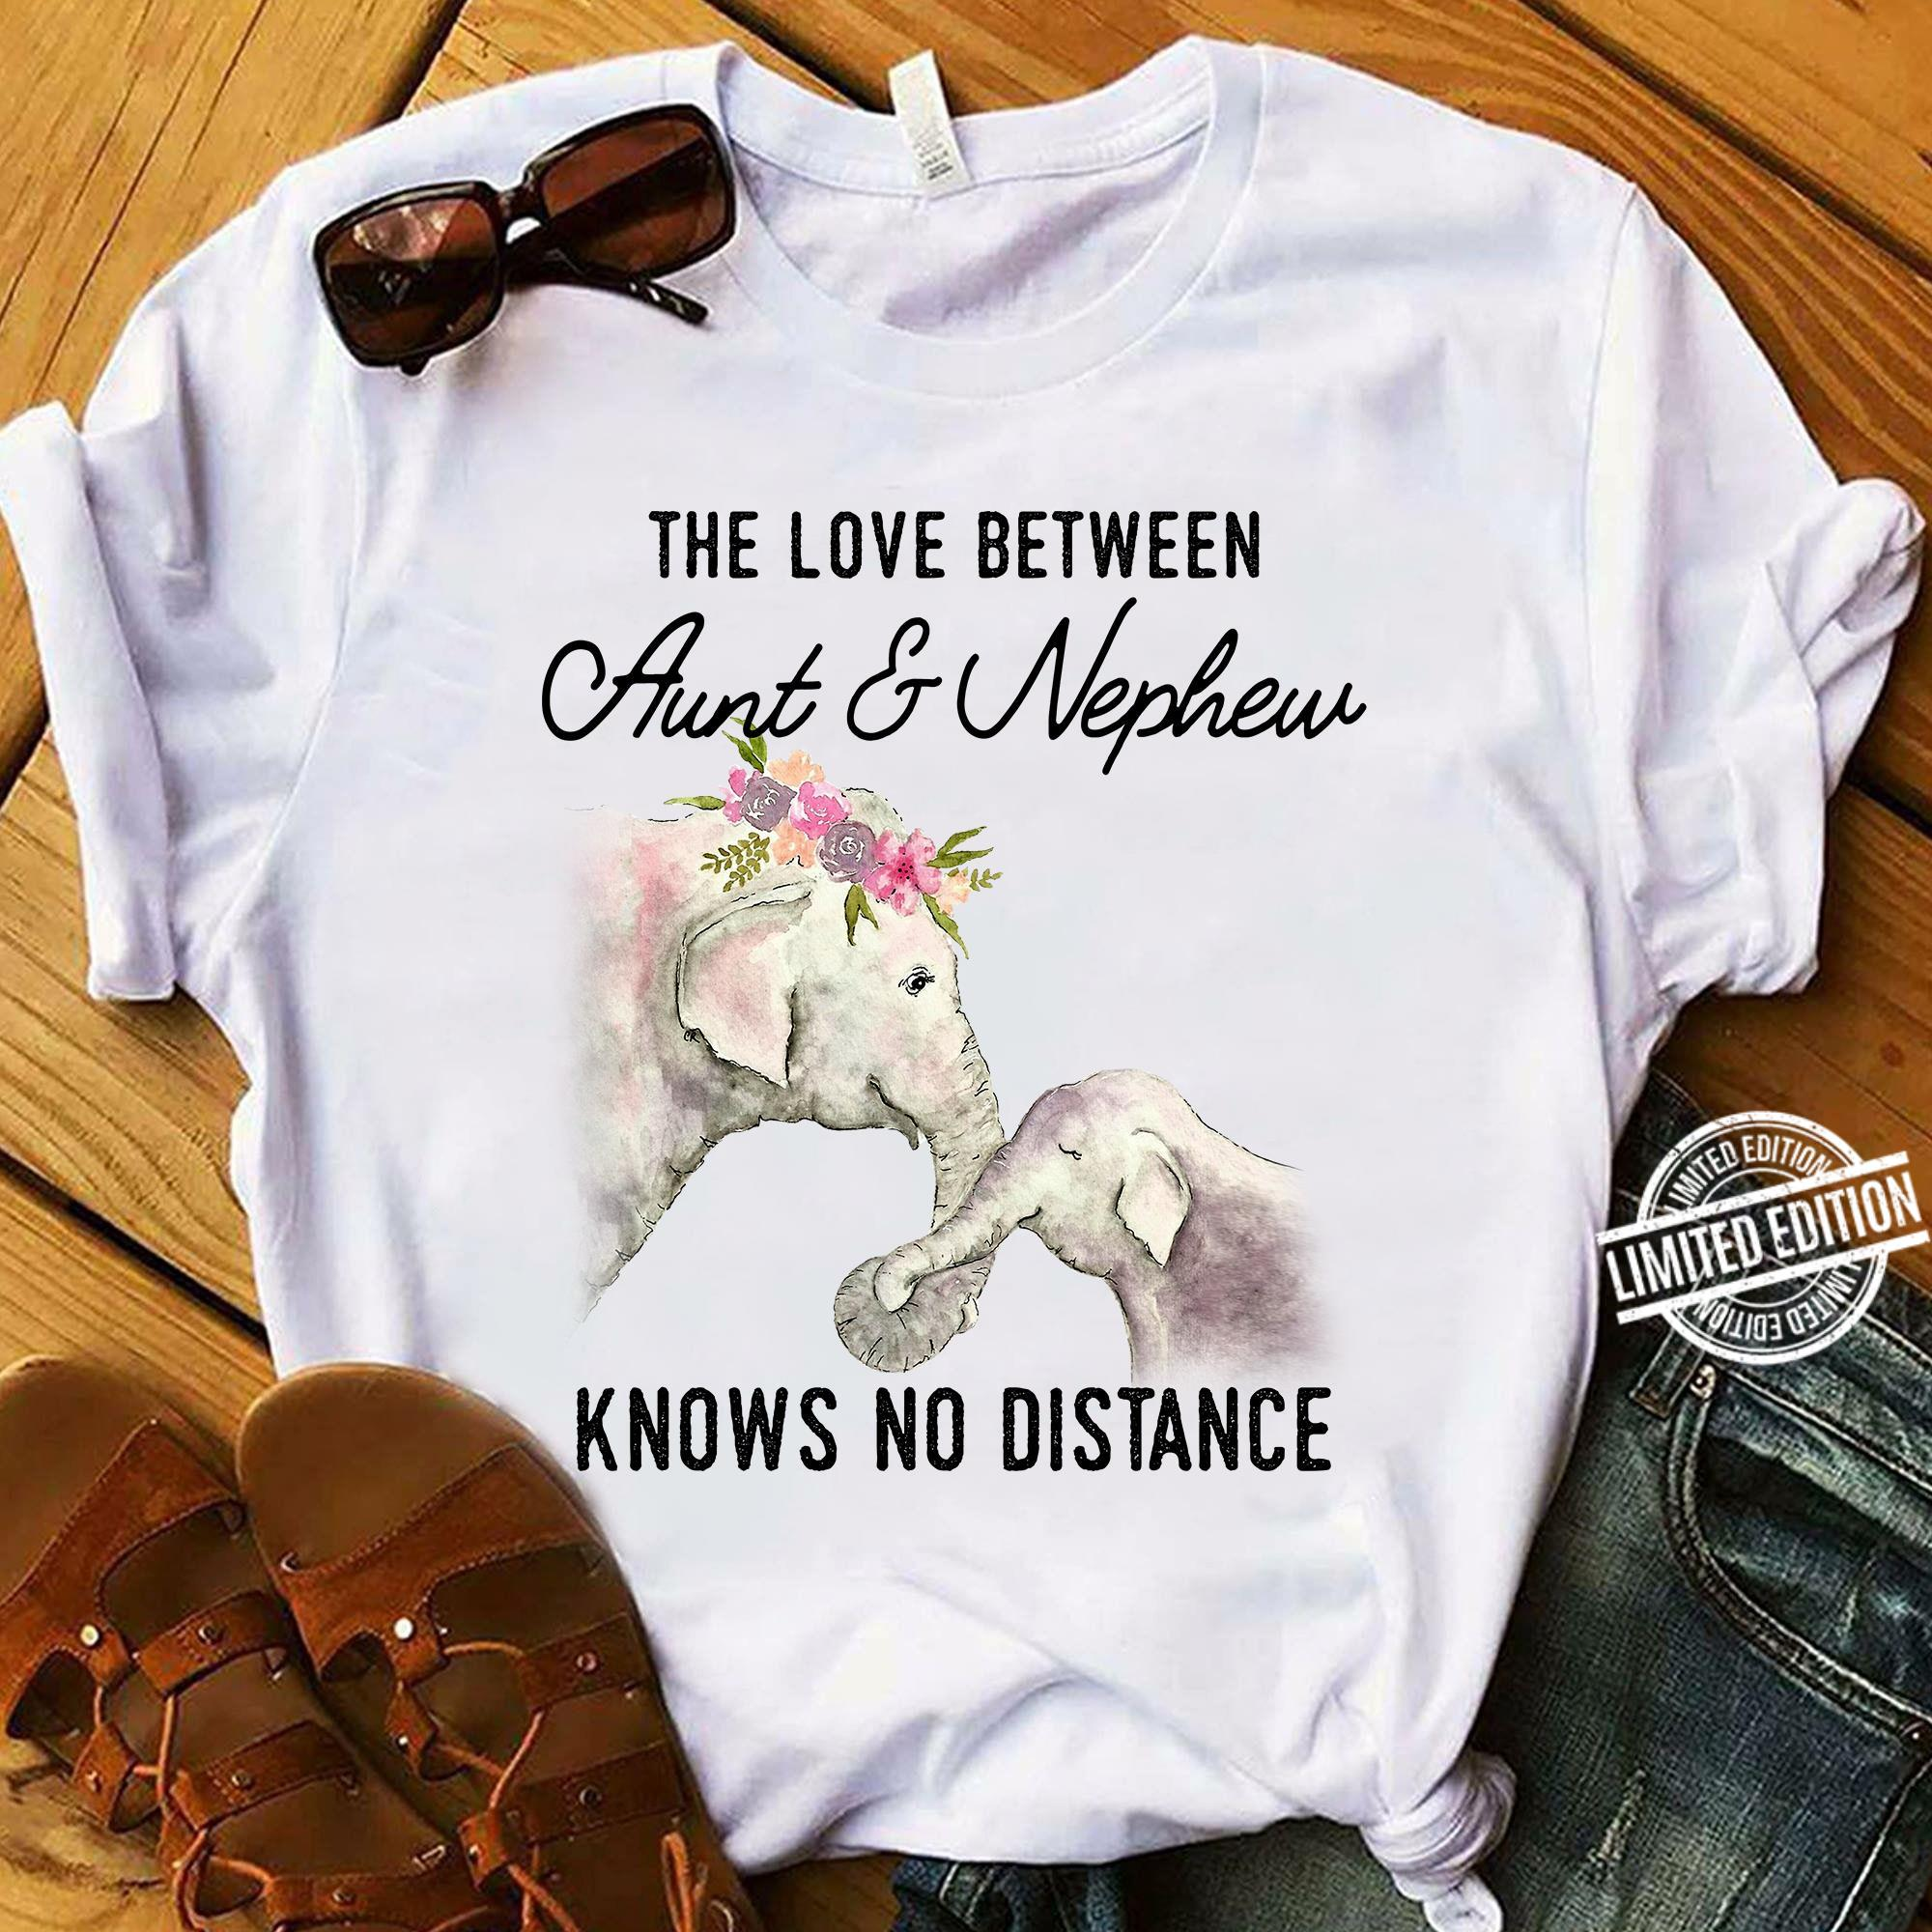 The Love Between Aunt & Nephew Knows No Distance Shirt